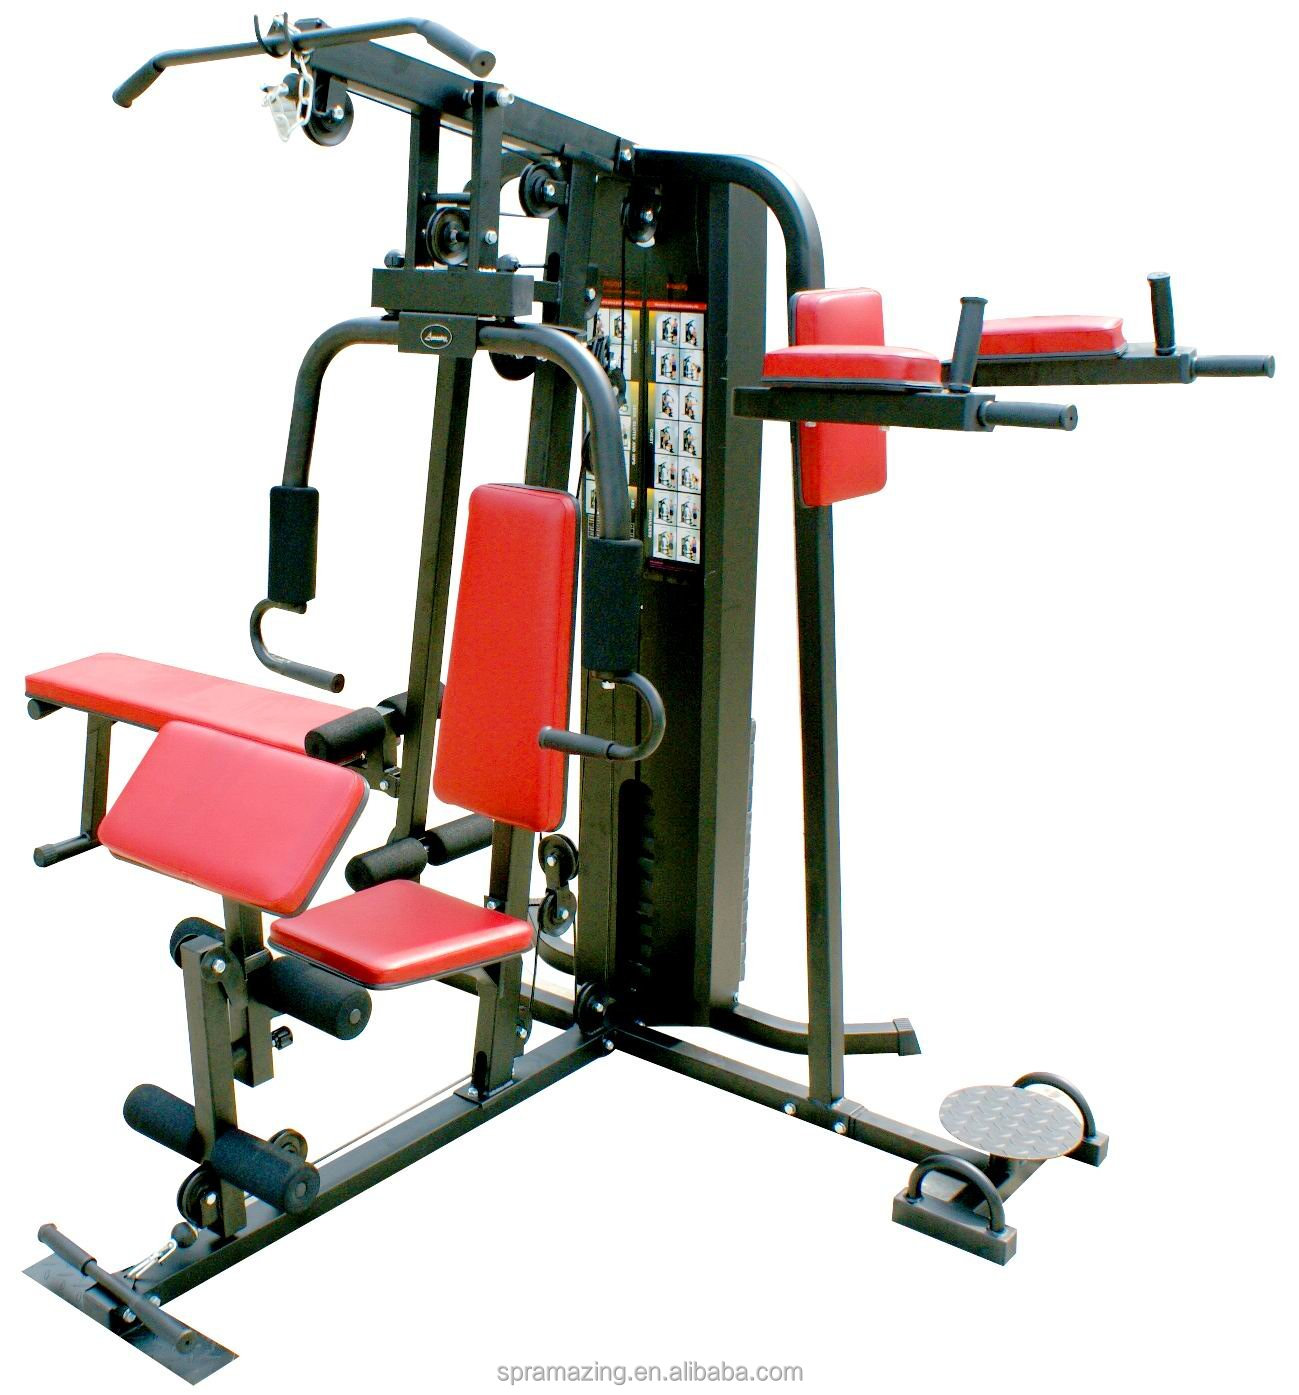 Station multi gym equipment ama e cheap price home